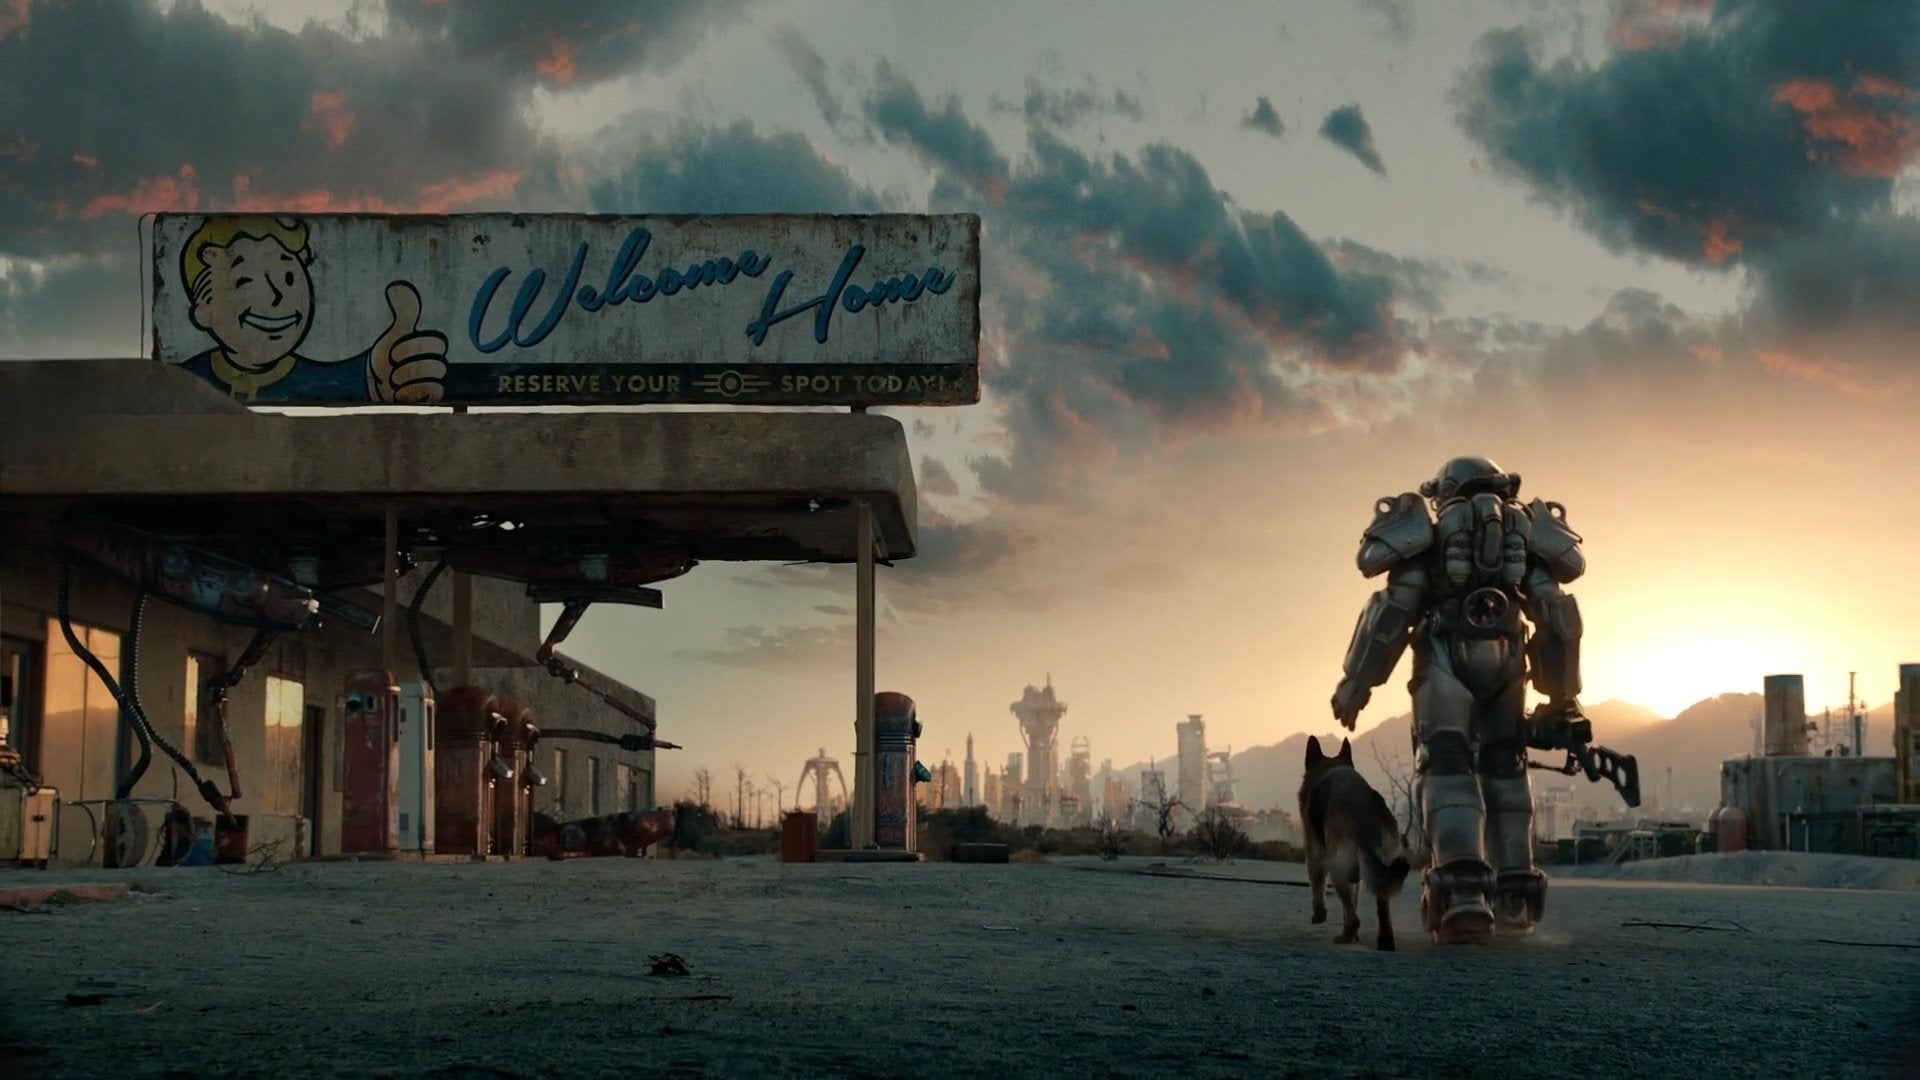 'Morally Indefensible' Fallout 4 Commercial Leads To Lawsuit